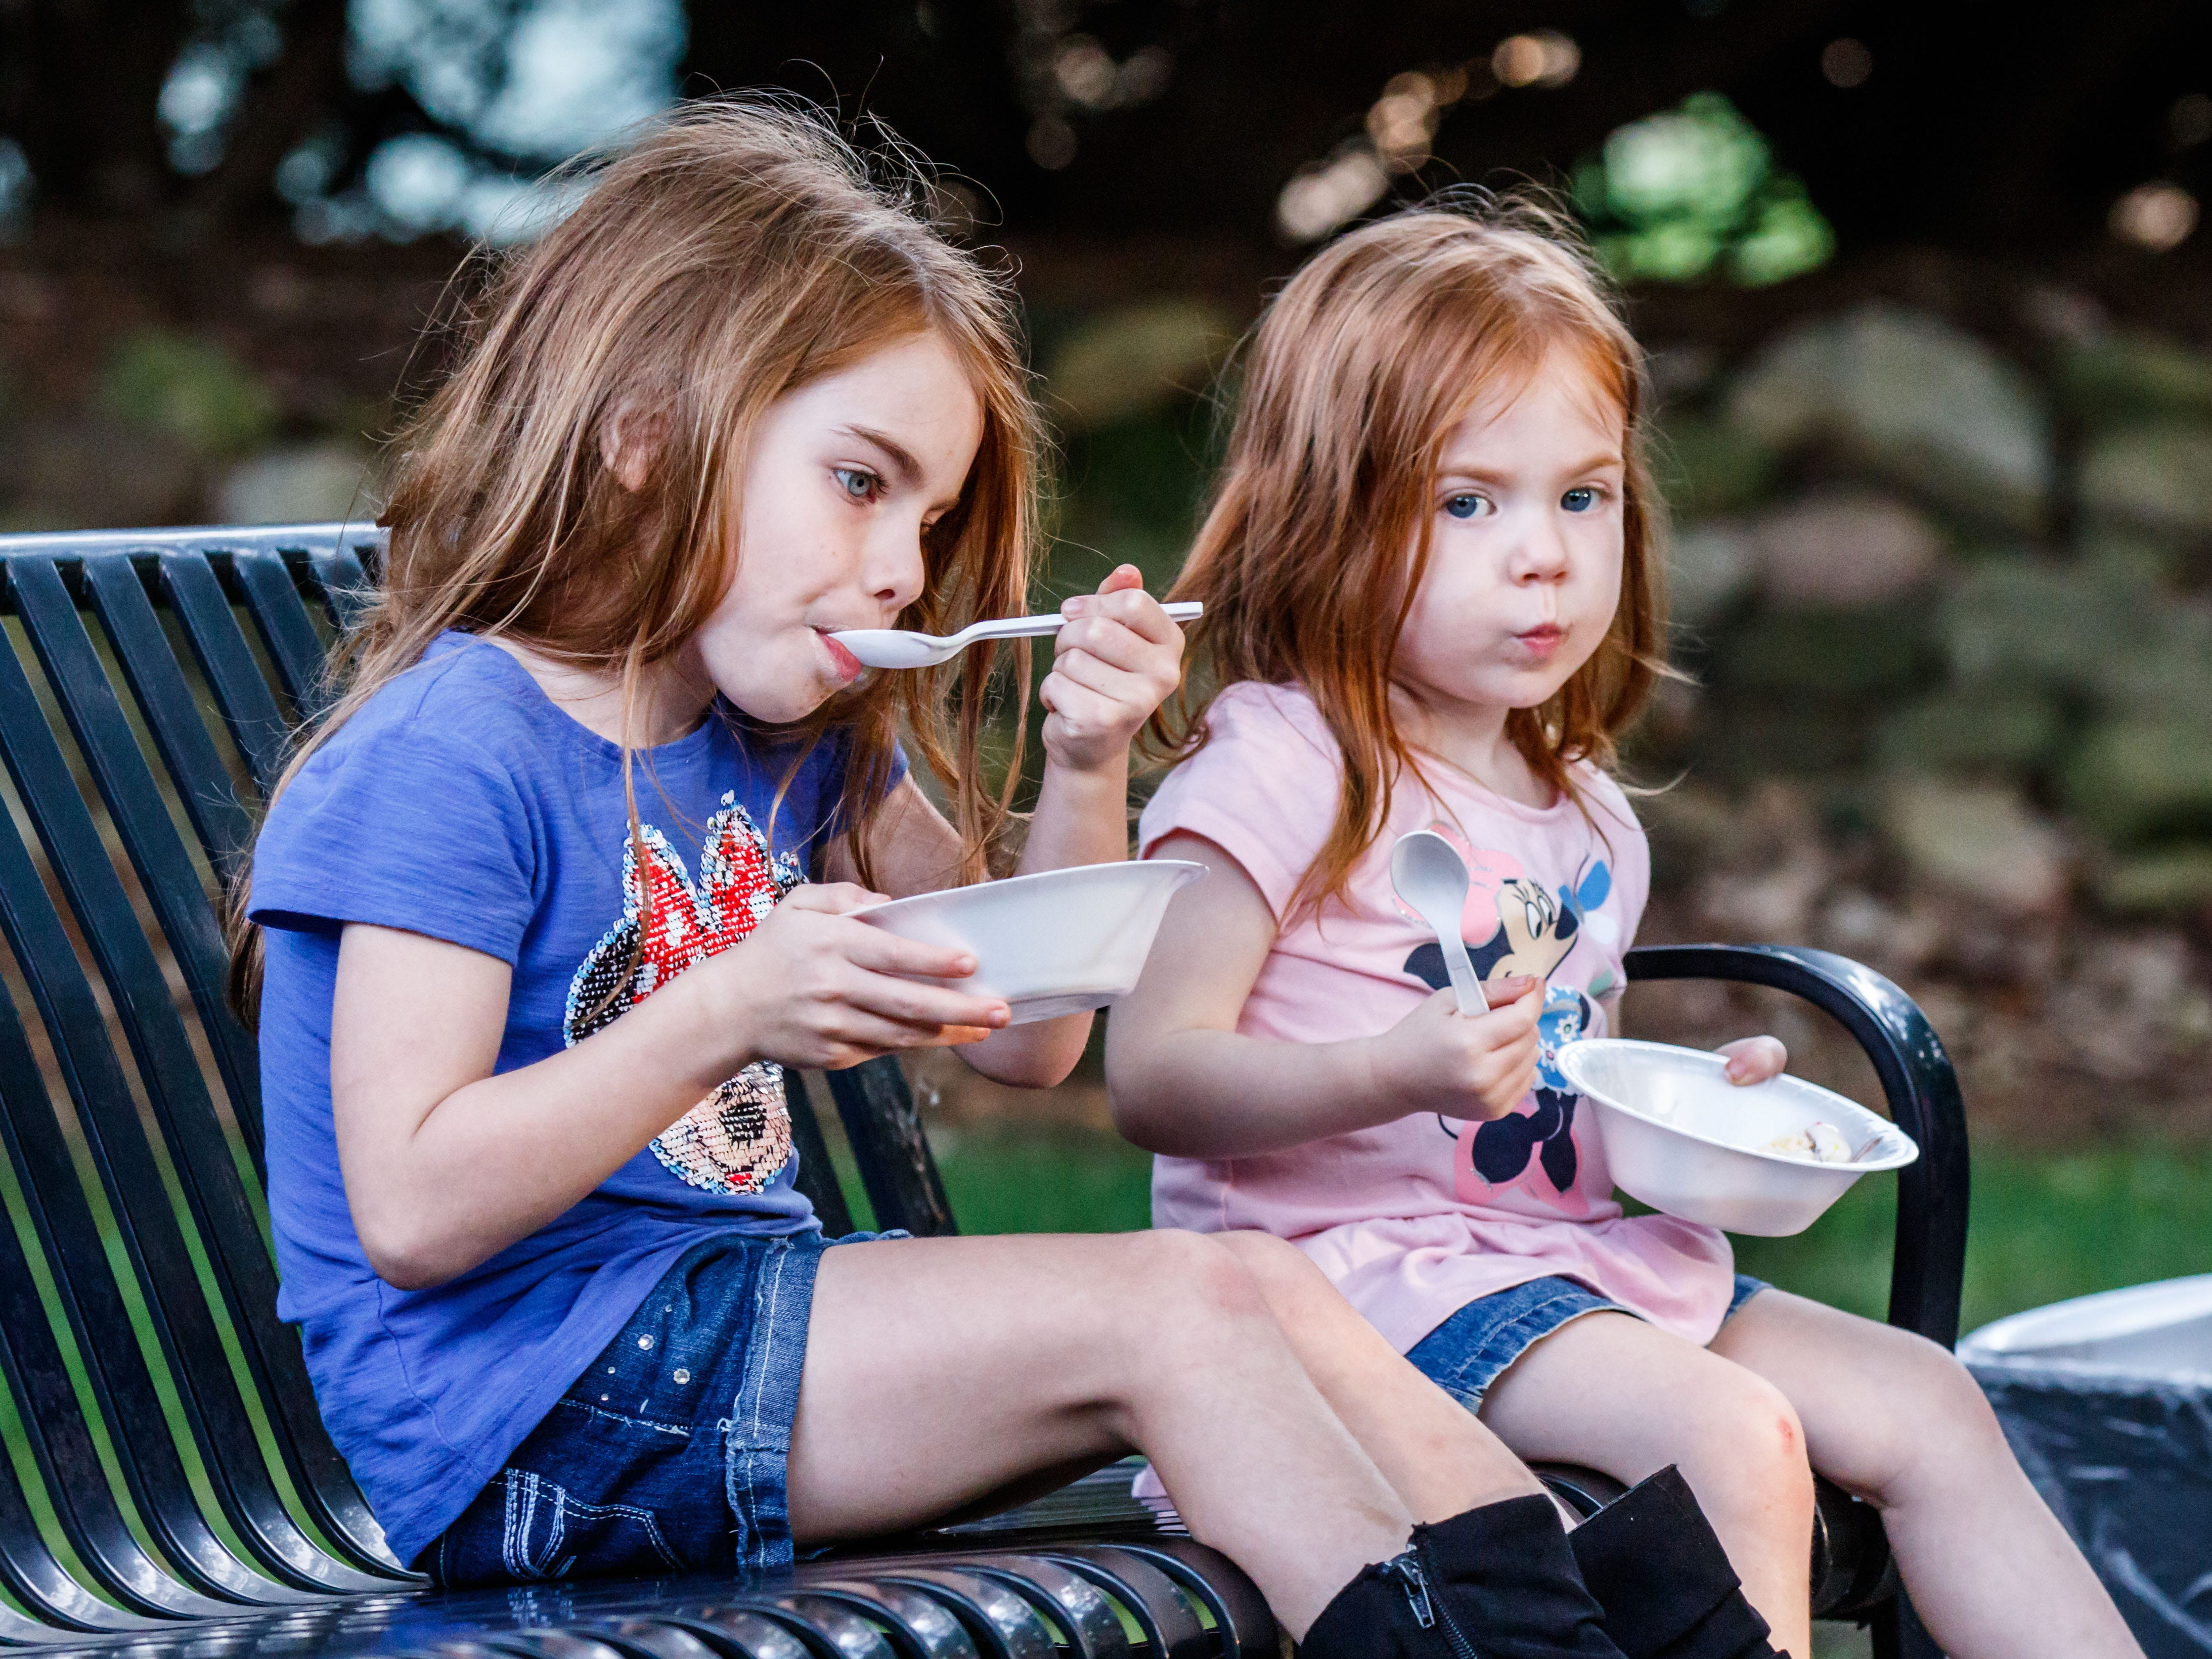 Five-year-old Riley Ebbole and her sister Bailey, 2, of Brookfield, enjoy ice cream sundaes during the Brookfield Public Library's Ice Cream Social on Tuesday, August 7, 2018. The free event, sponsored by Friends of the Library, celebrates the end of Summer Reading with ice cream and music.